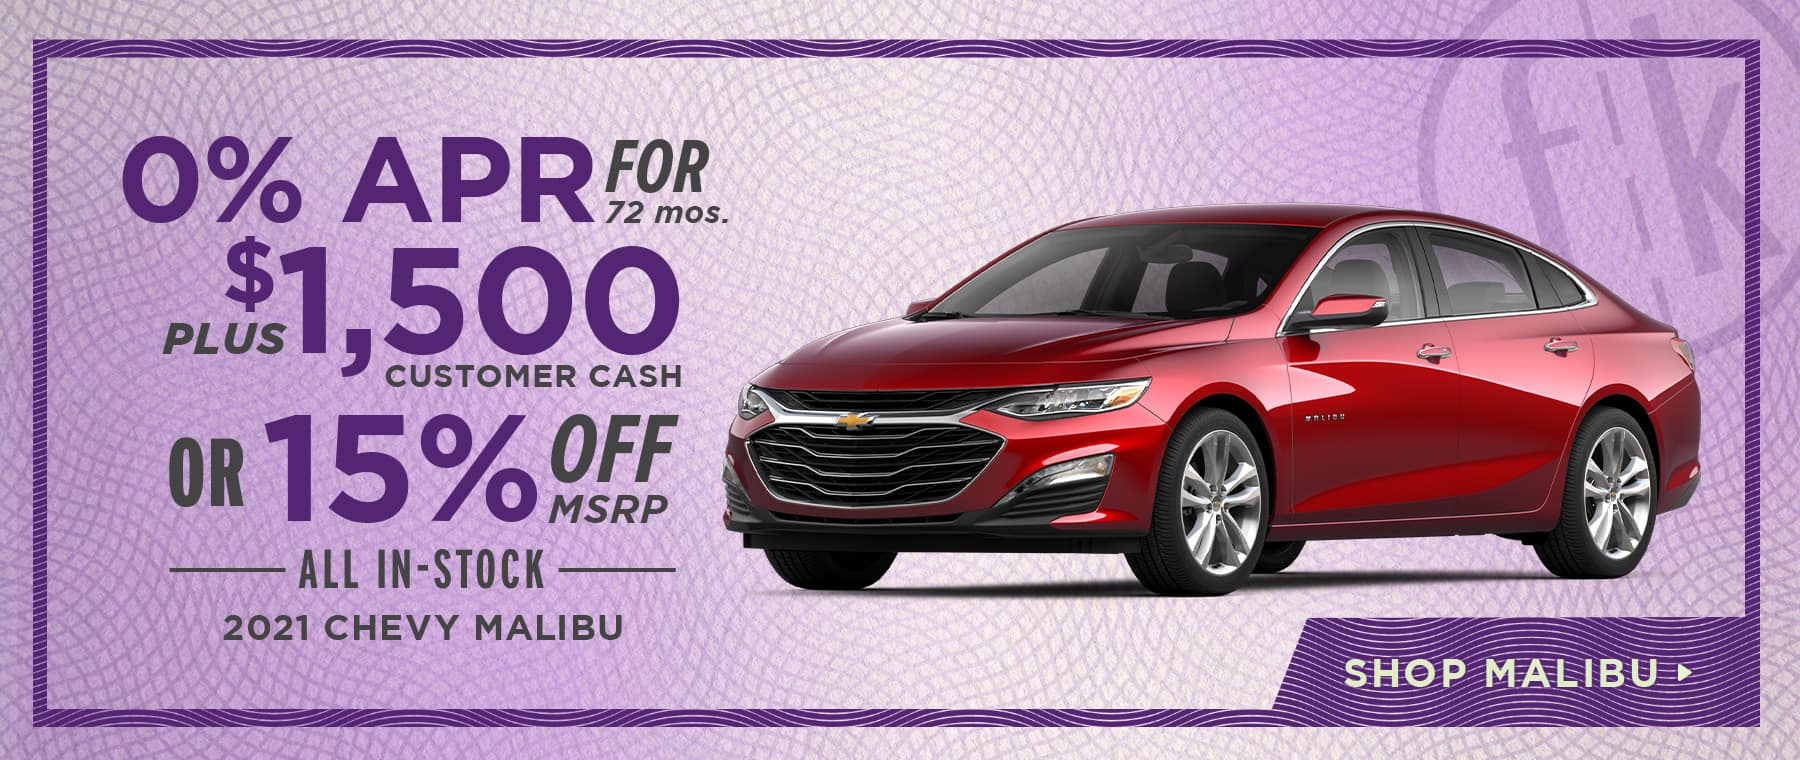 0% for 72 mos. PLUS $1,500 Customer Cash OR 15% Off All In-Stock 2021 Chevy Malibu